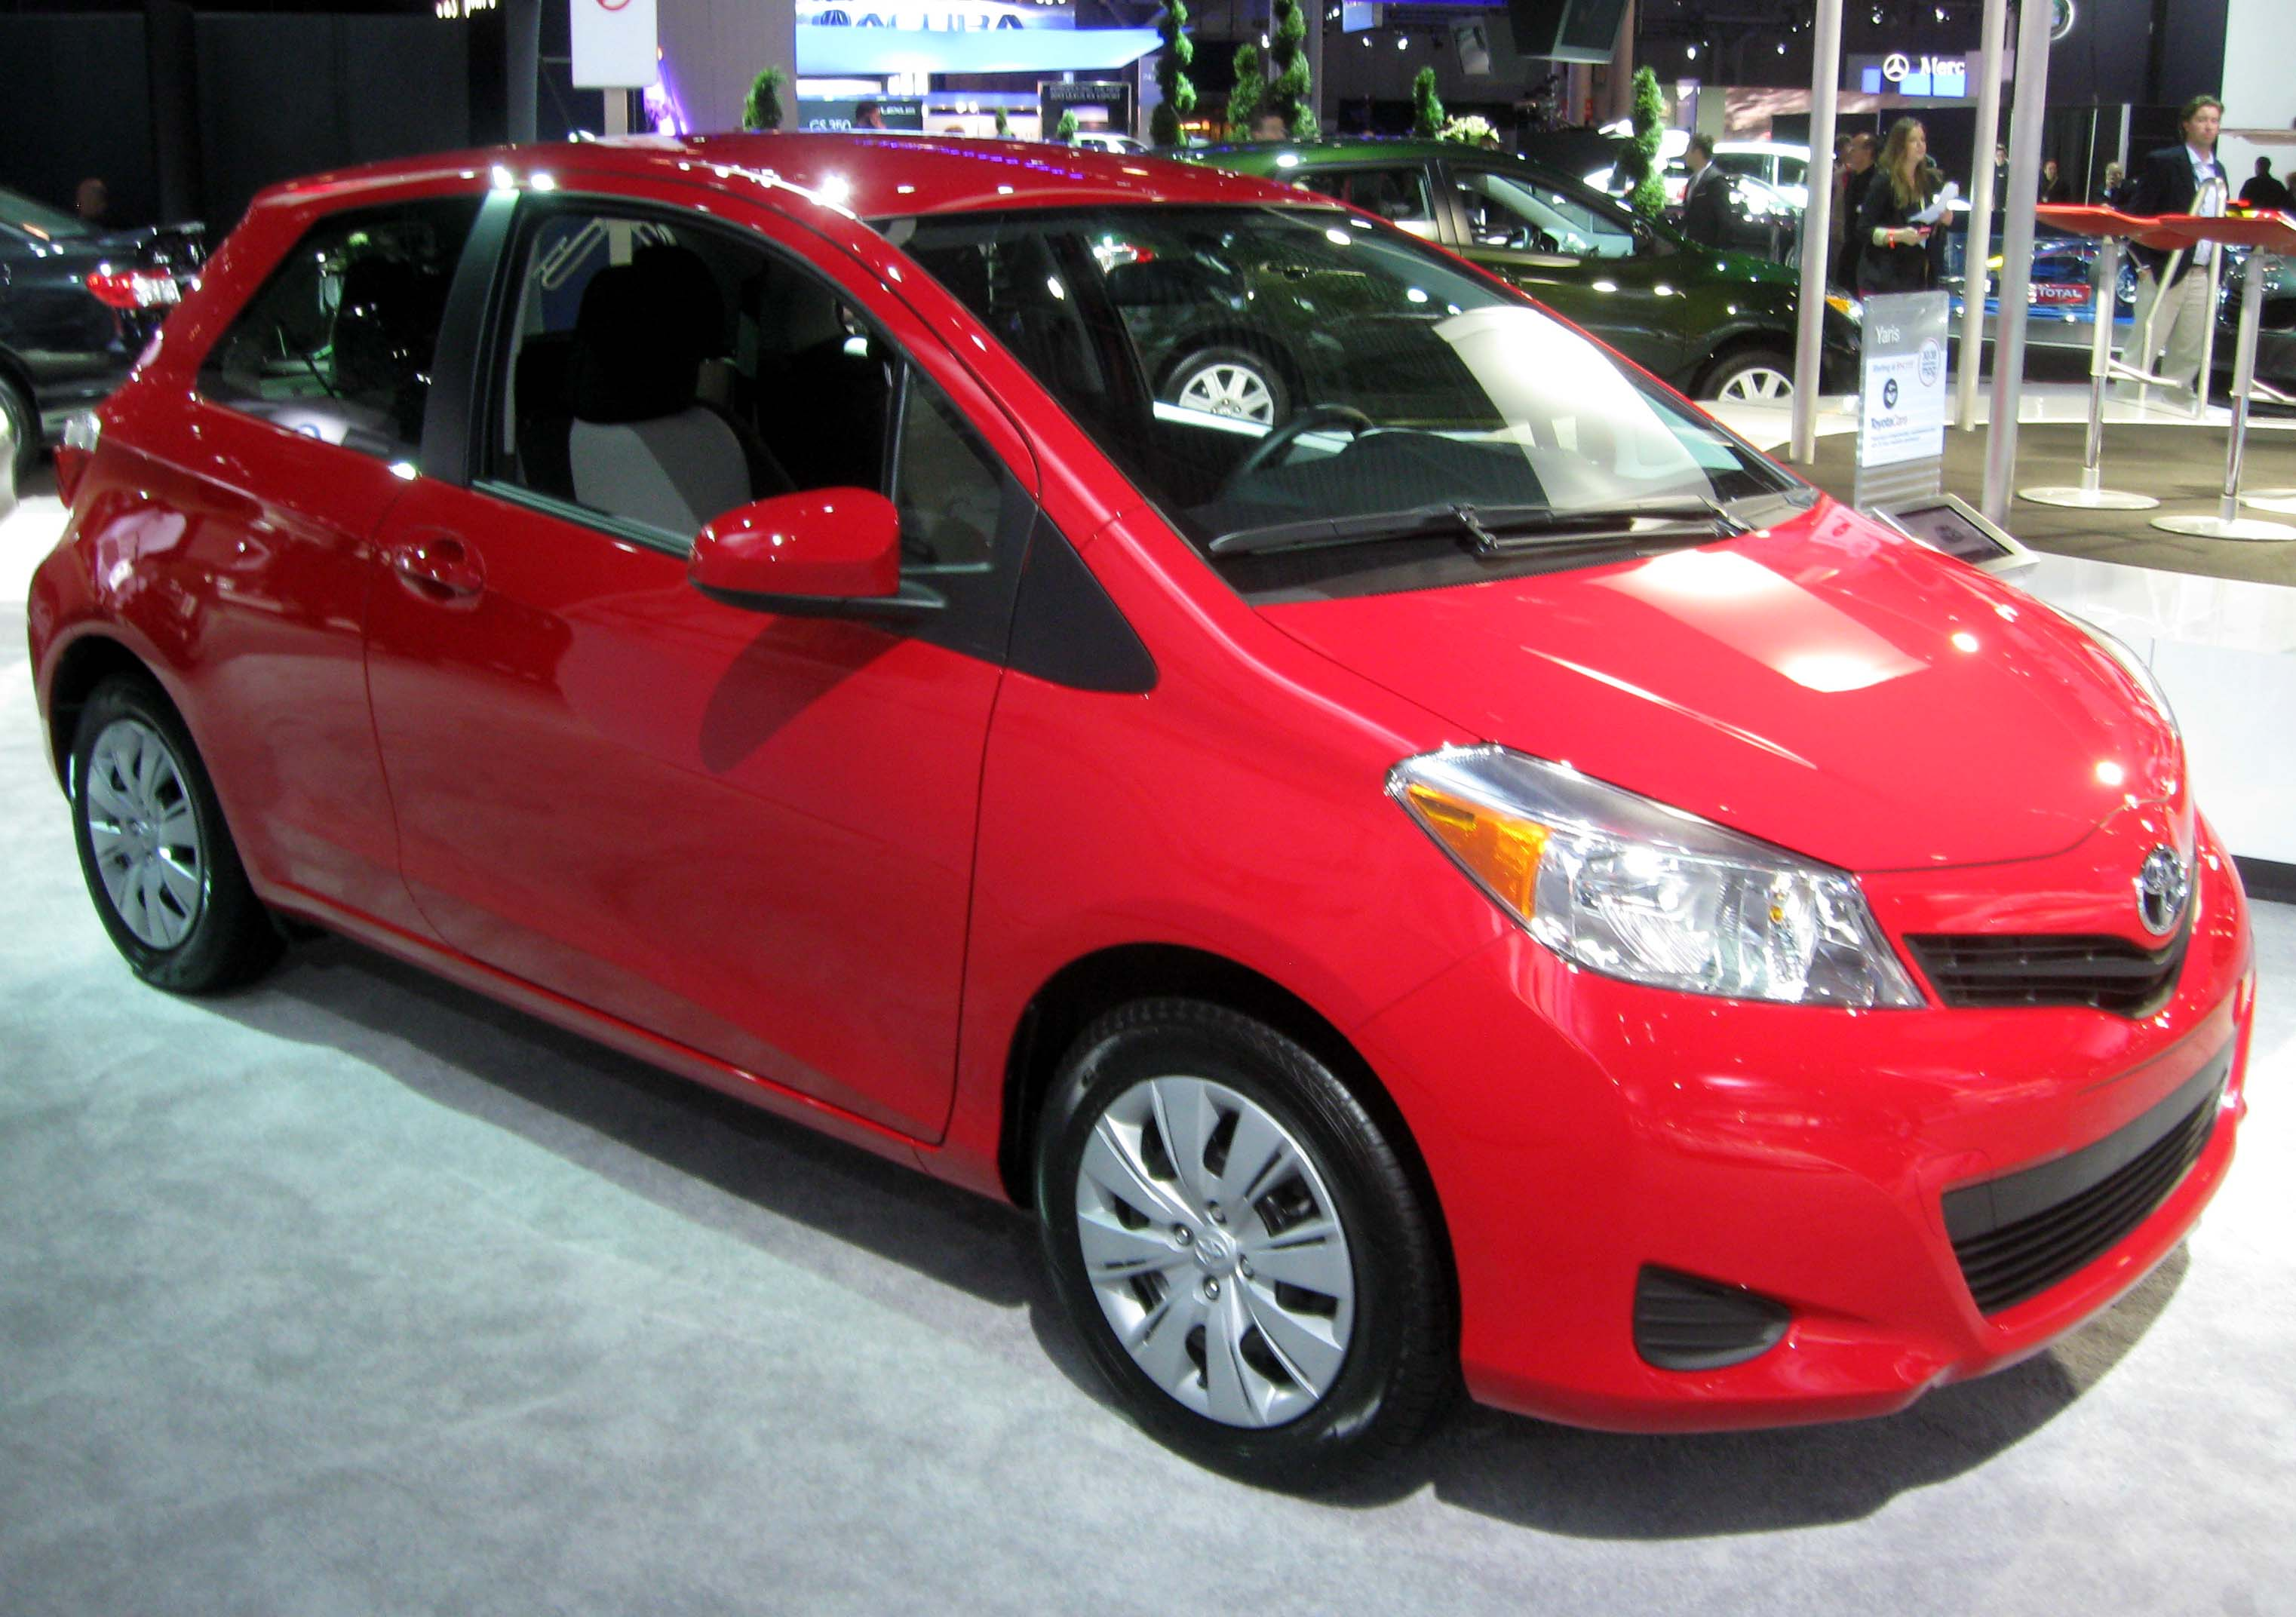 file 2012 toyota yaris 3 door 2012 nyias jpg wikimedia commons. Black Bedroom Furniture Sets. Home Design Ideas